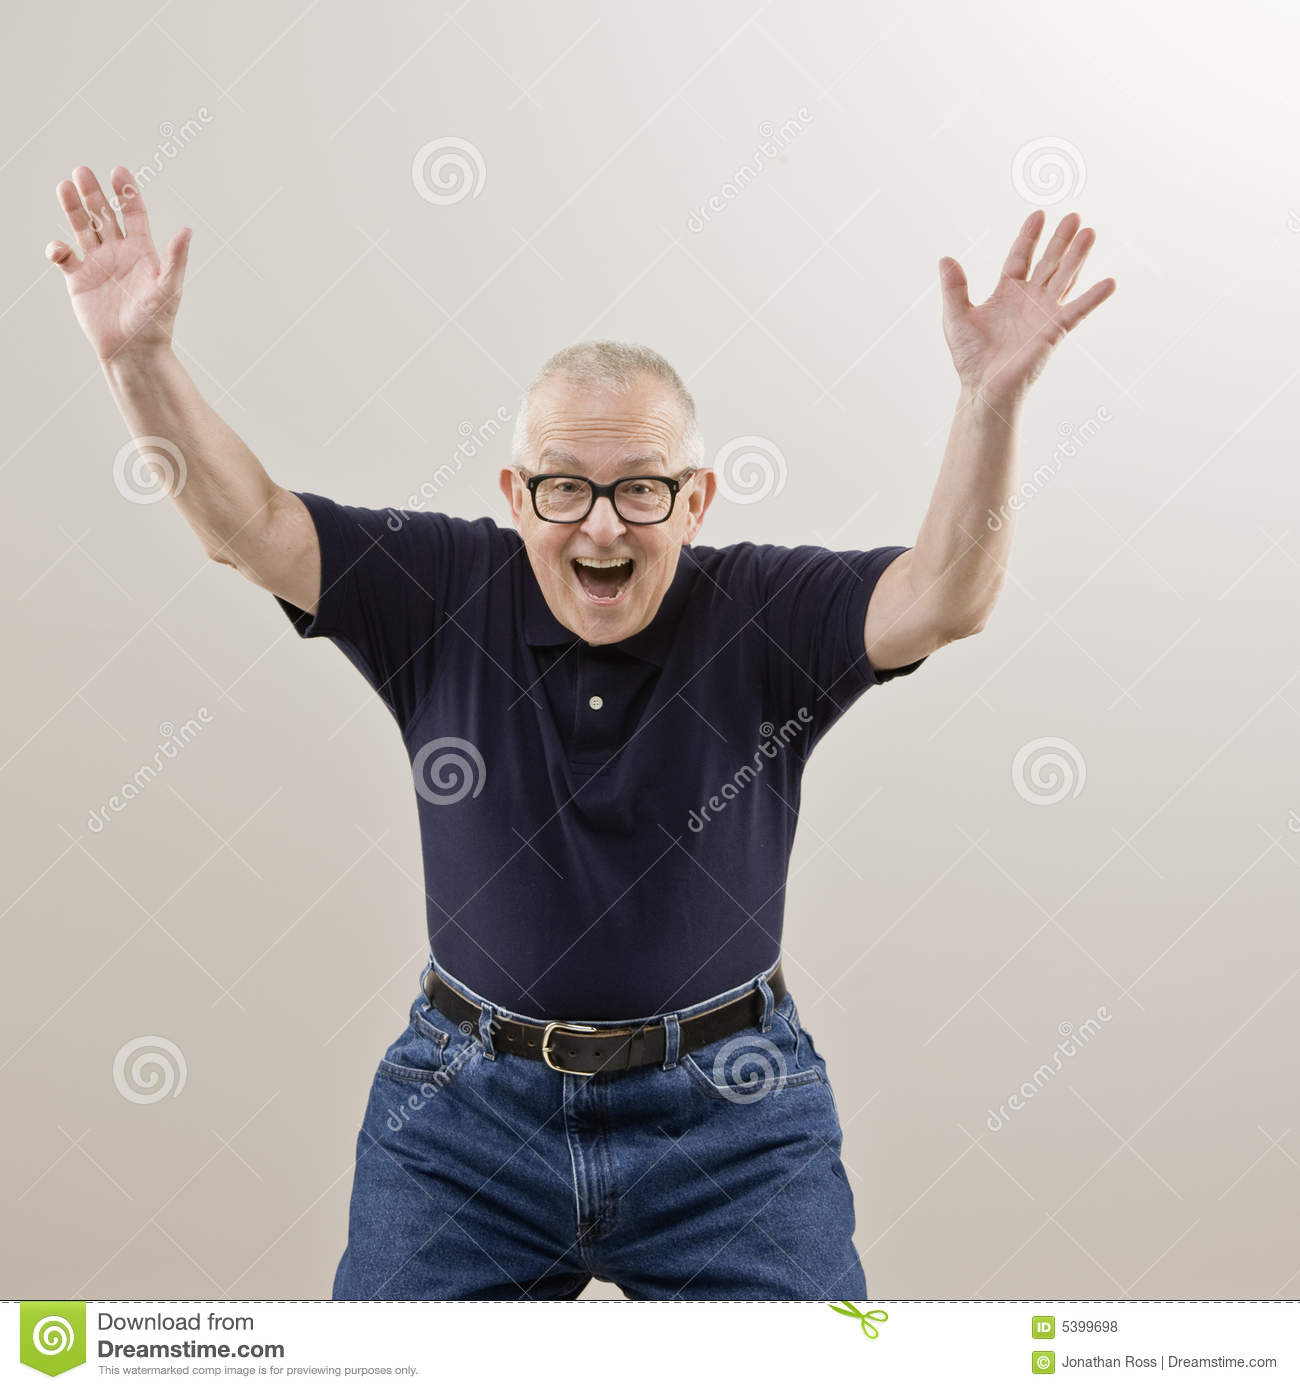 Excited Senior Man With Arms Raised Royalty Free Stock